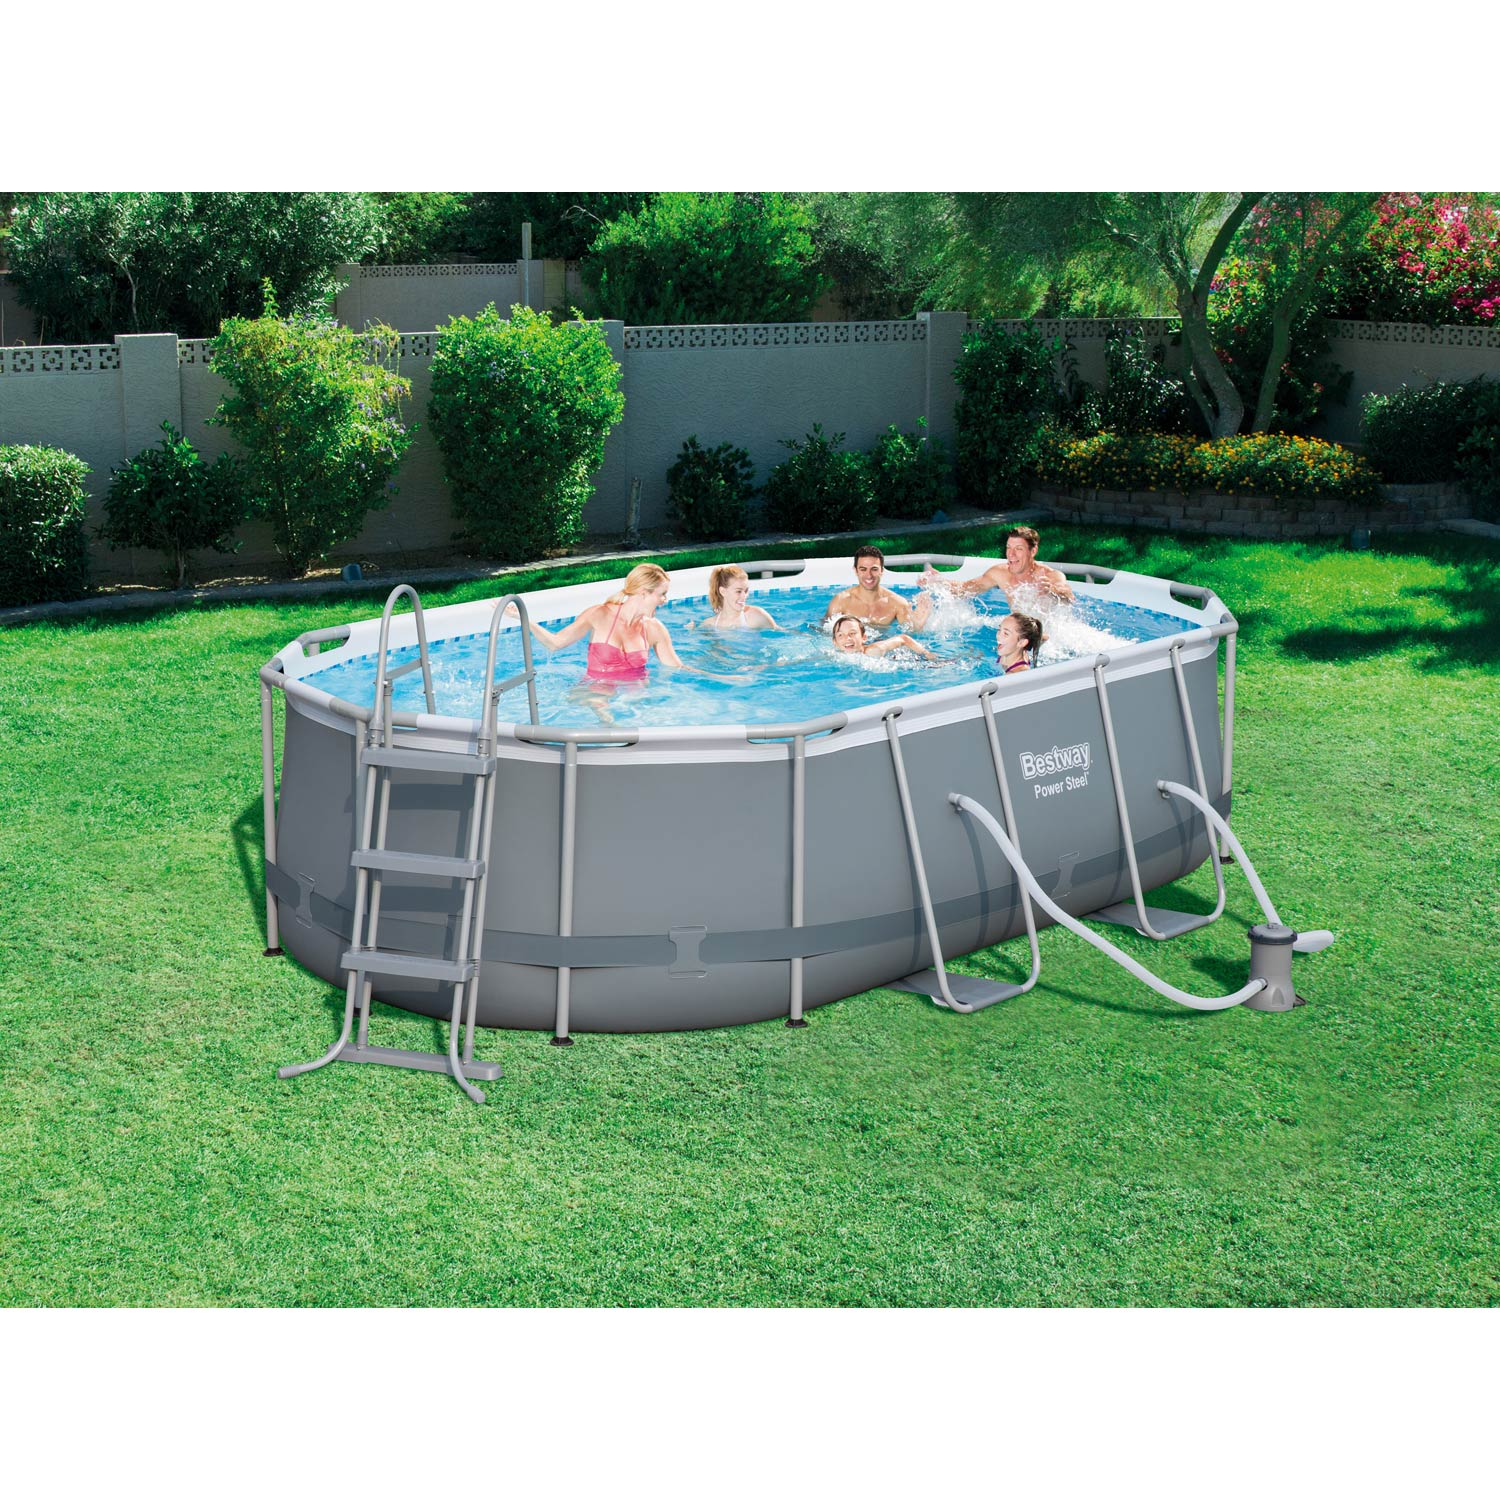 Piscine hors sol autoportante tubulaire bestway l x for Piscine tubulaire leroy merlin